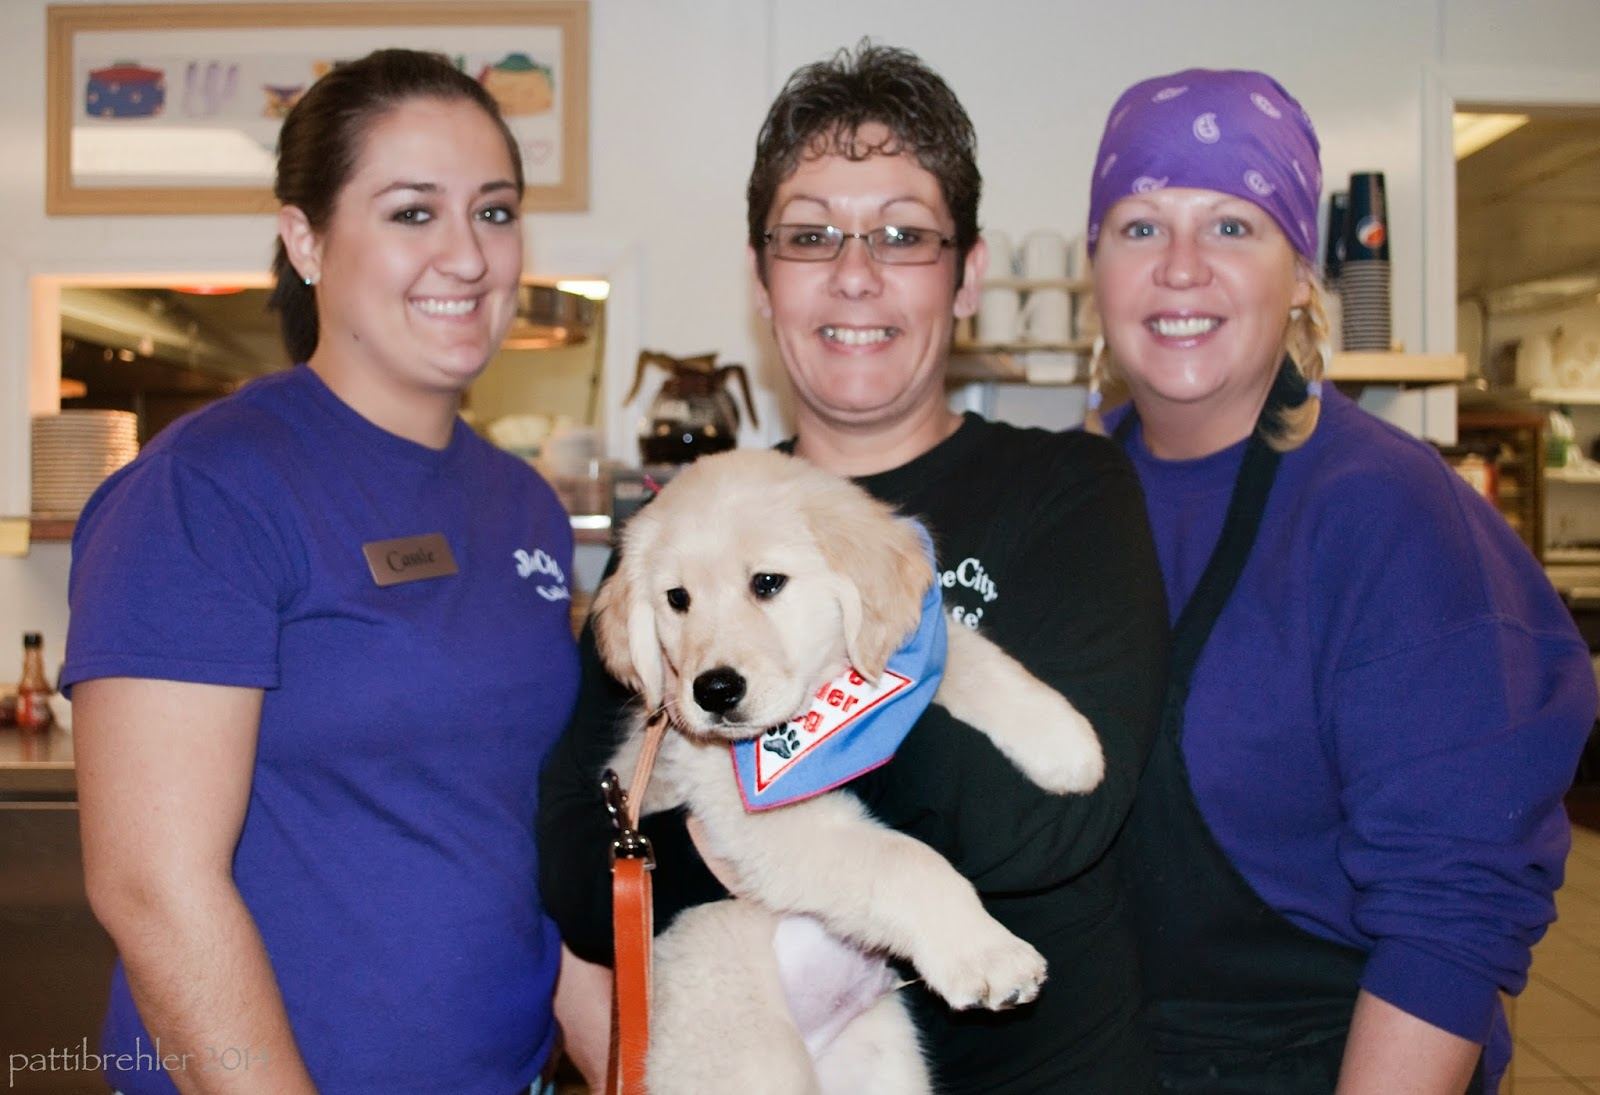 Three women face the camera. The woman in the middle is holding a golden retriever puppy, barely! The women on the left and right are wearing purple shirts, the woman in the middle is wearing a blck sweartshirt, and glasses. The woman on the right is wearing a purple scarf on her head.